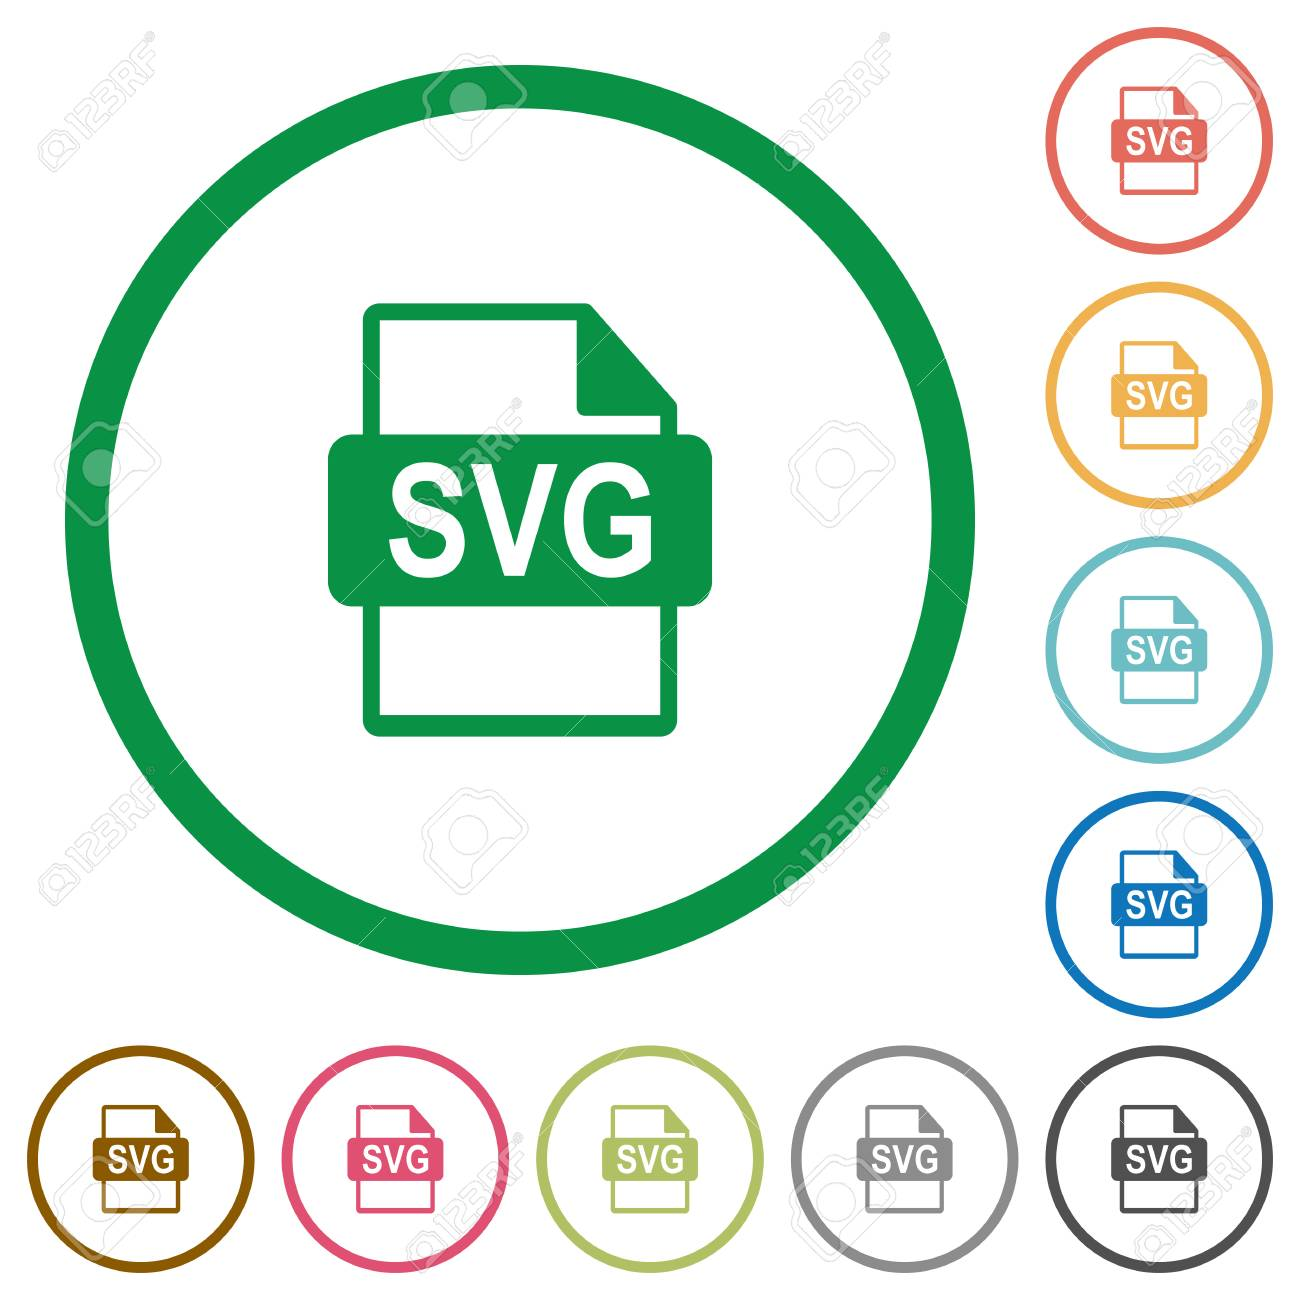 SVG file format flat color icons in round outlines on white background